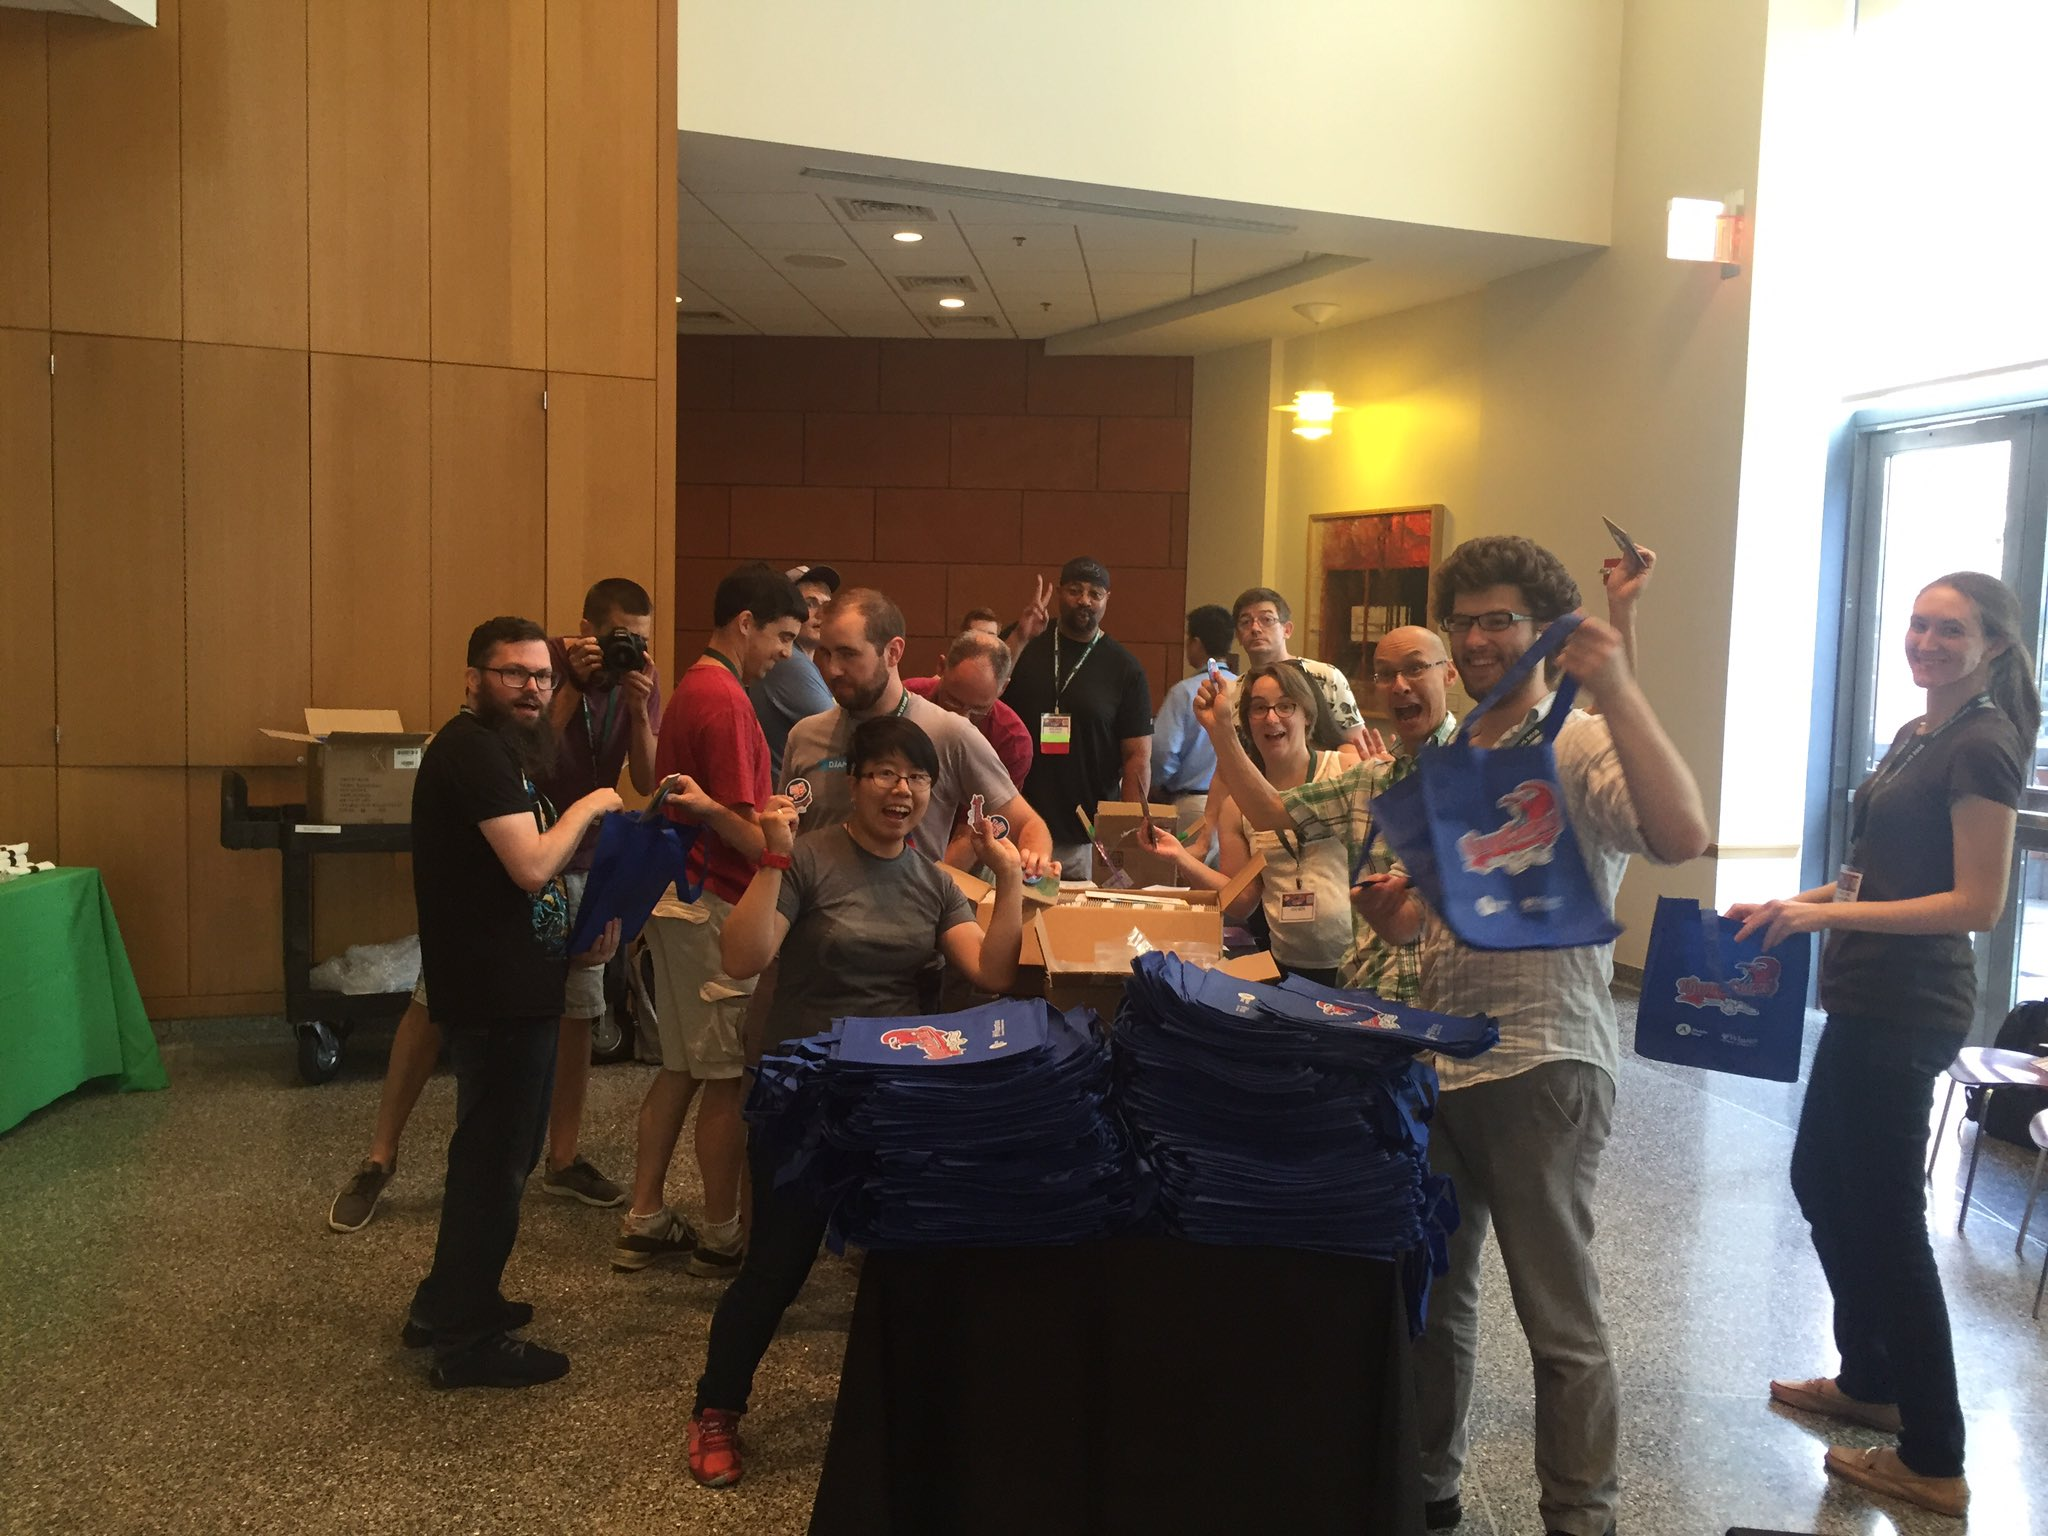 Bag stuffing at @djangocon! https://t.co/LxI9WvjHQV